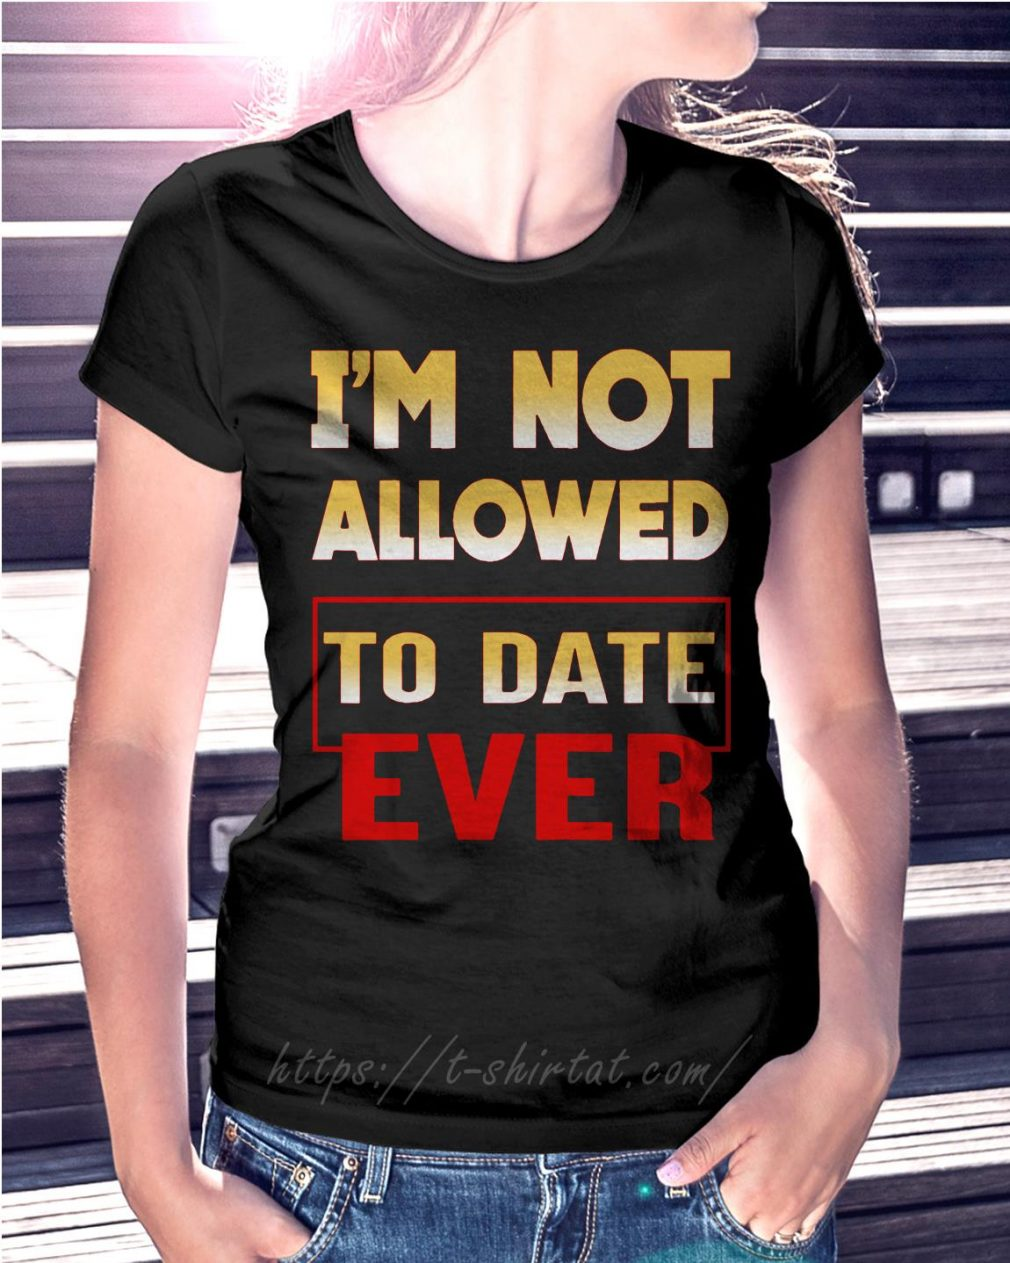 I'm not allowed to date ever